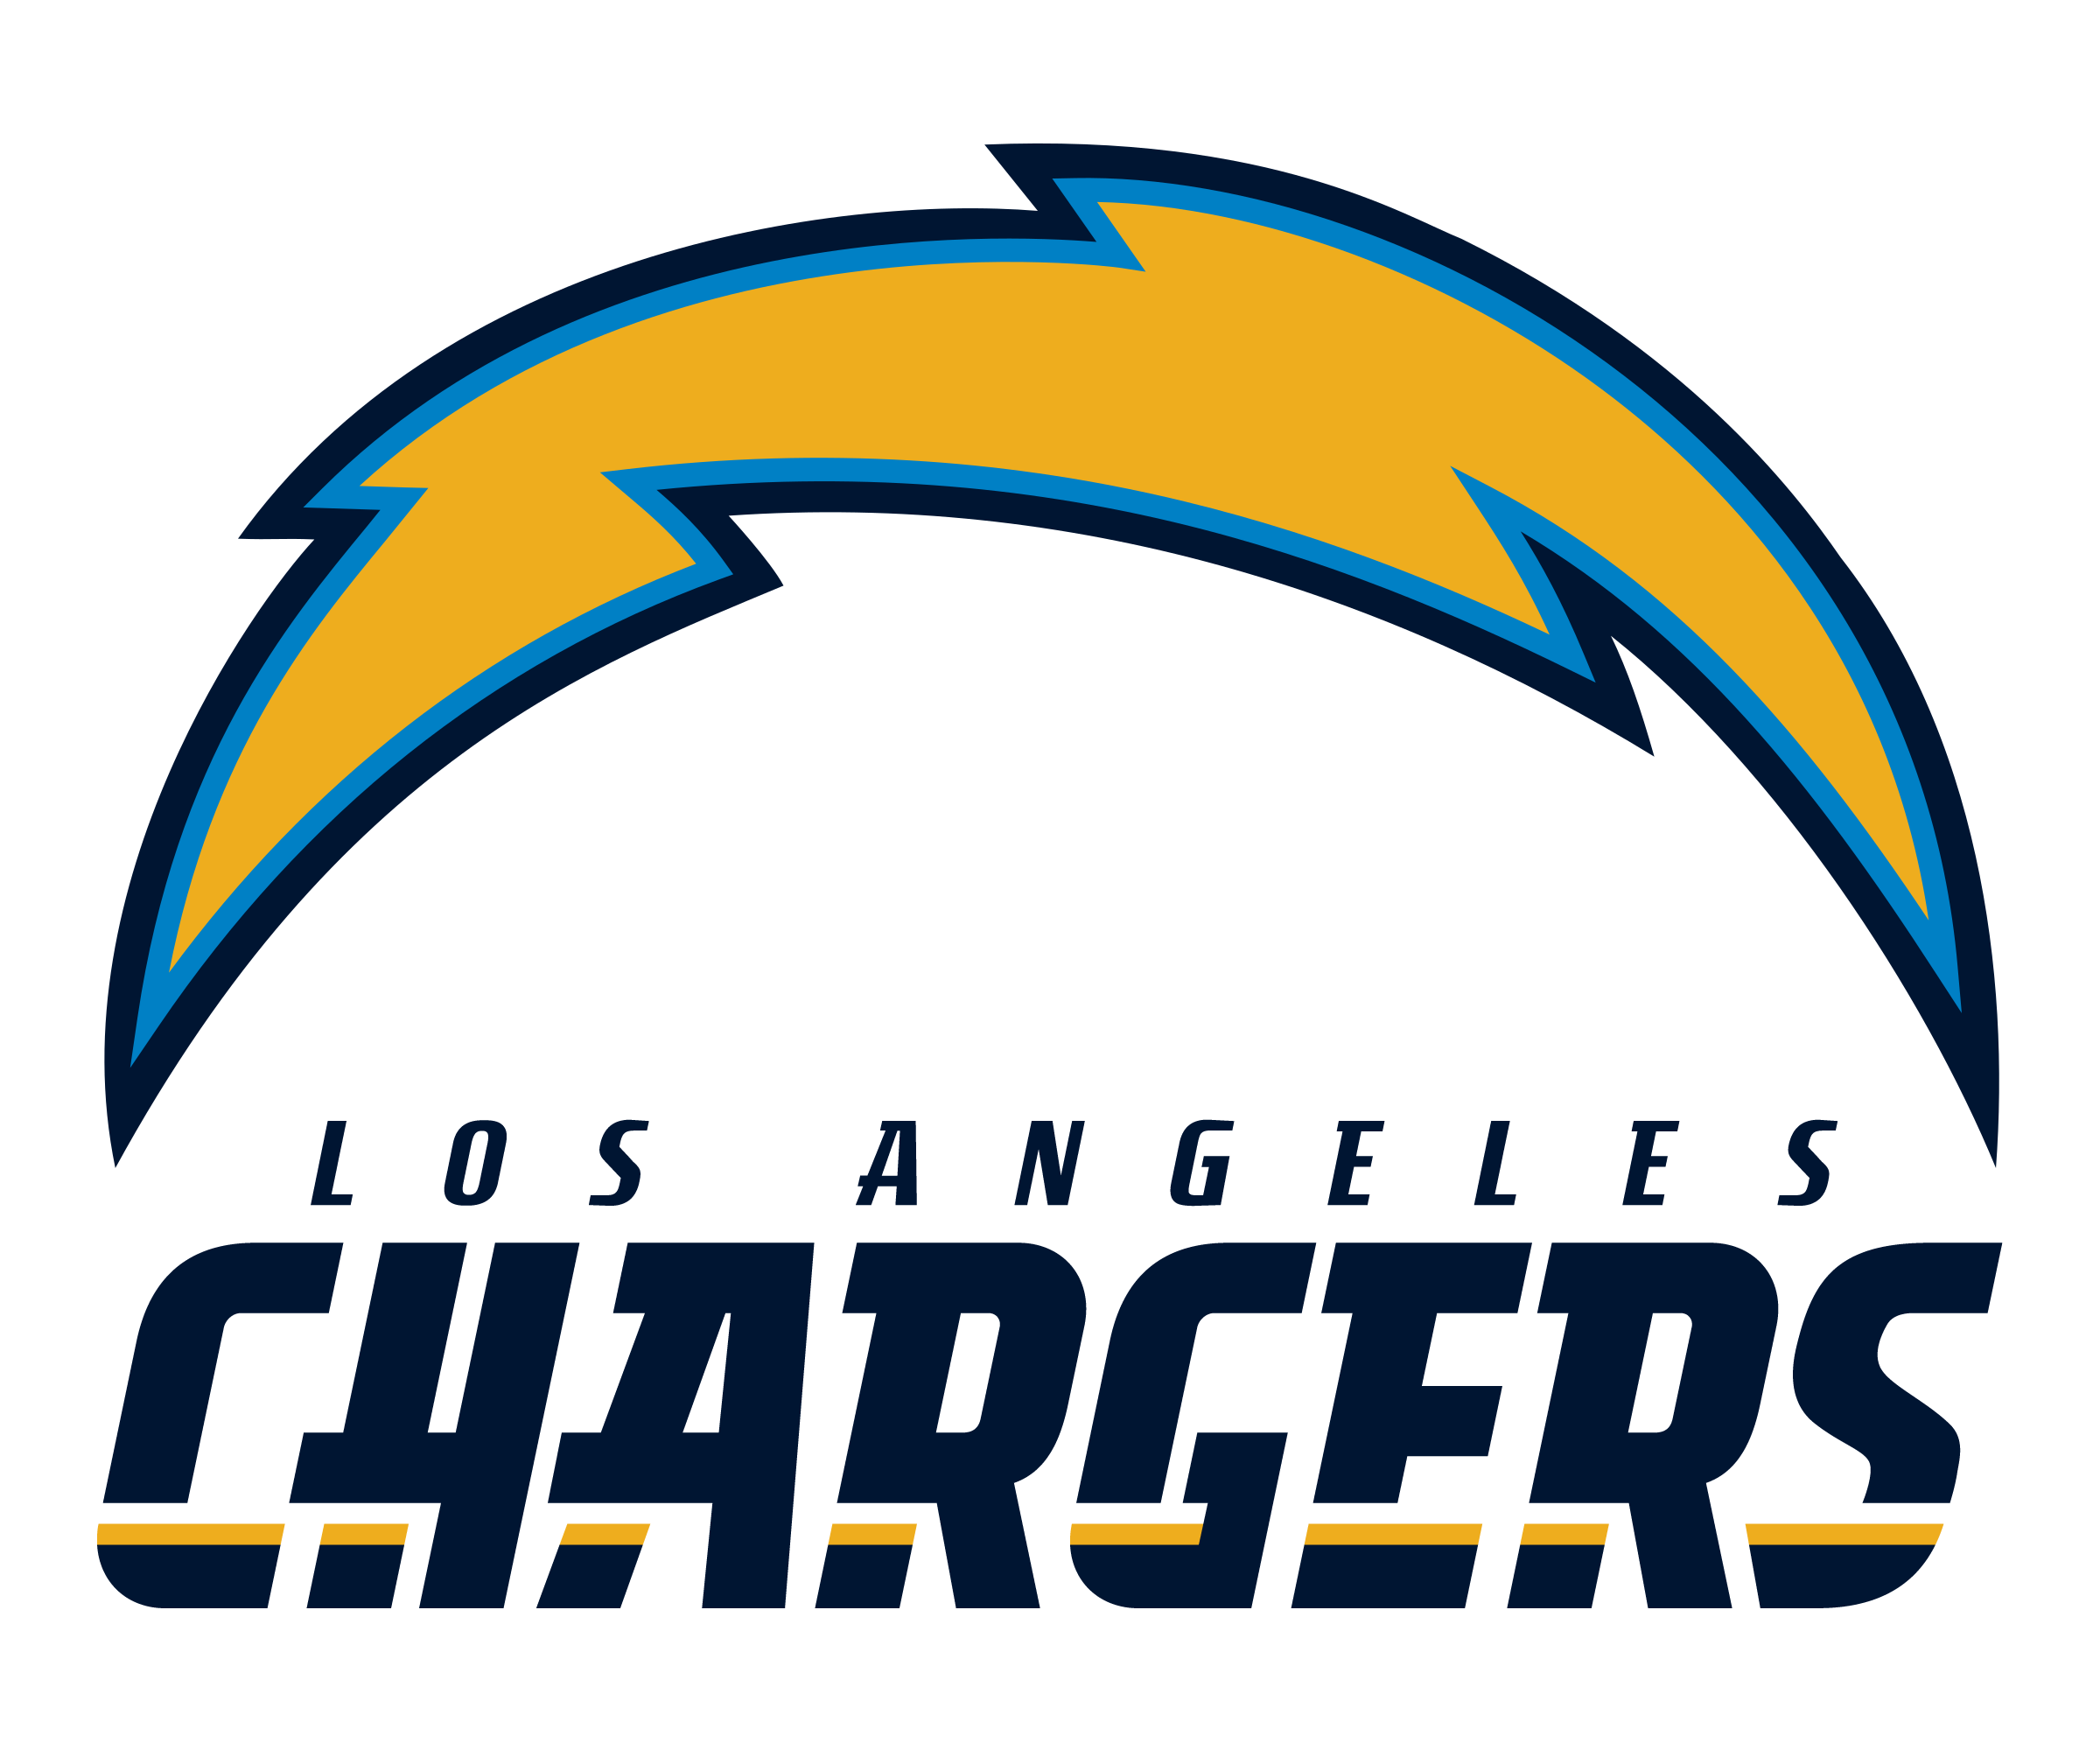 San Diego Chargers Bolt Logo: Los Angeles Chargers Logo PNG Transparent & SVG Vector